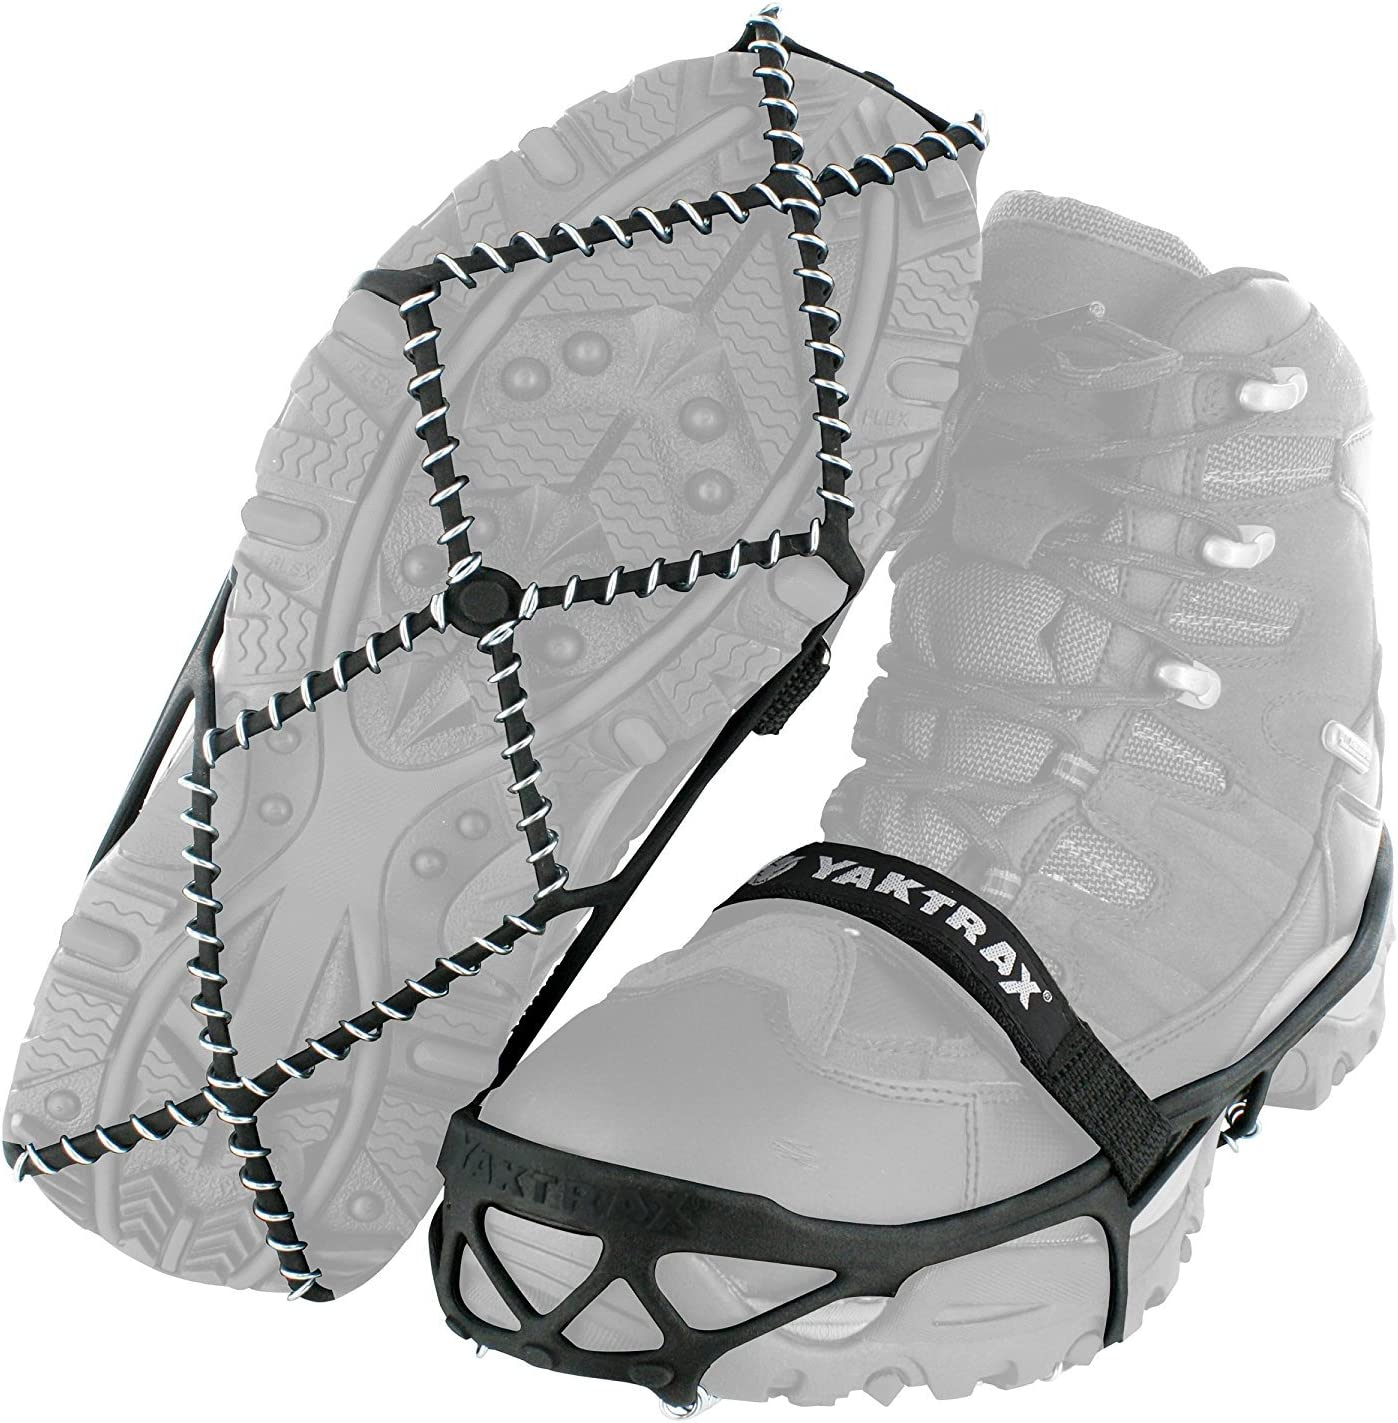 Yaktrax-Pro-traction-cleats-for-snow-and-ice